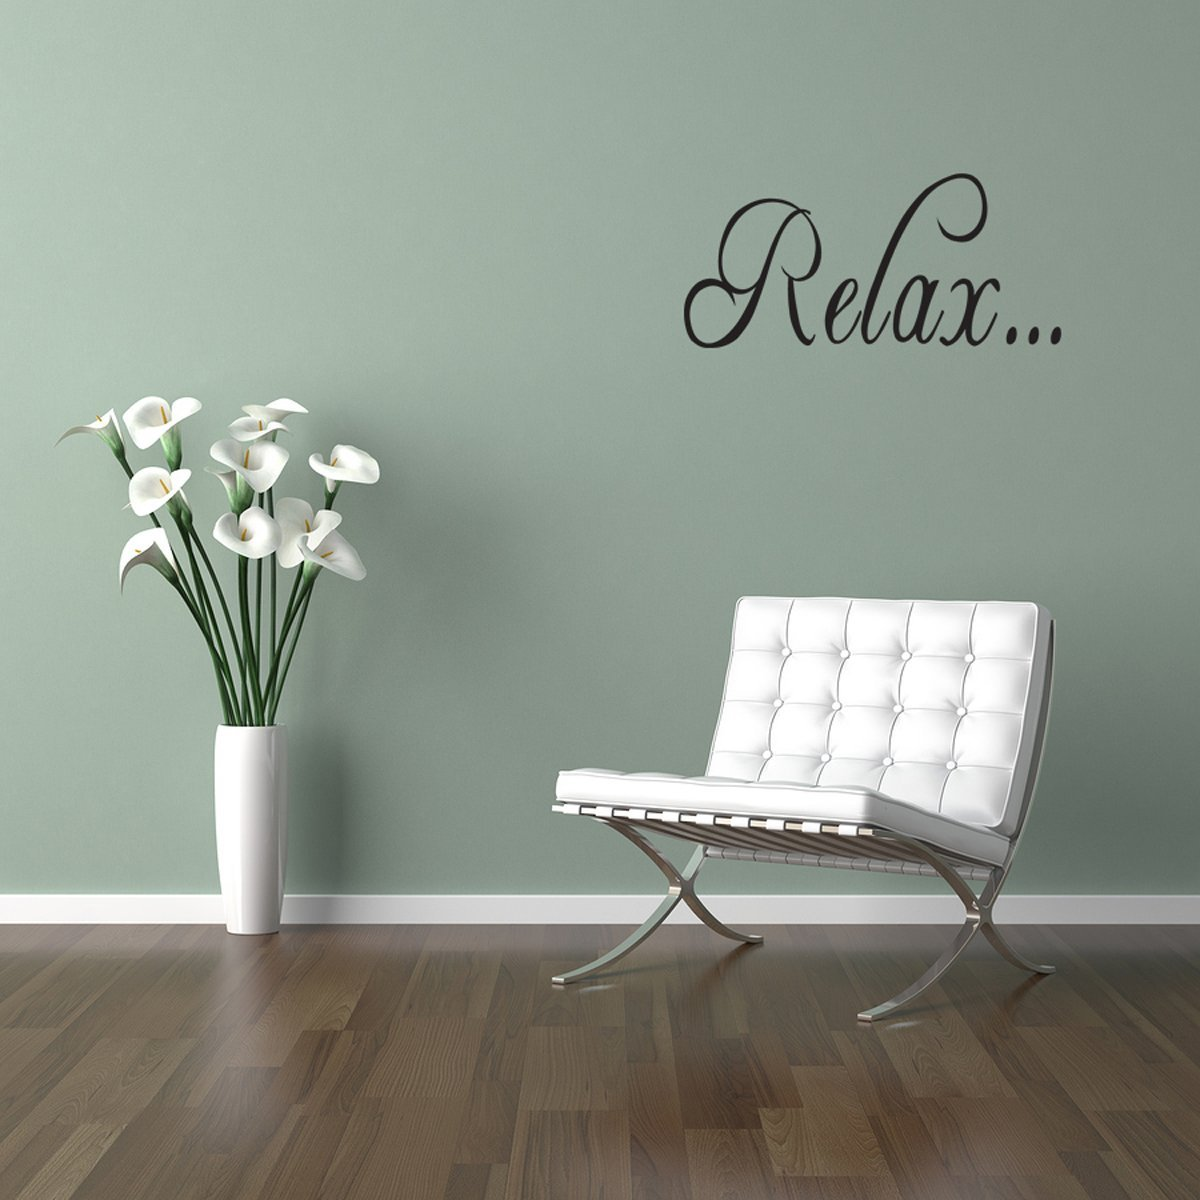 Relax Bathroom Tub Wall Quote Decal Saying Lettering Home Decor Vinyl Sticker 35